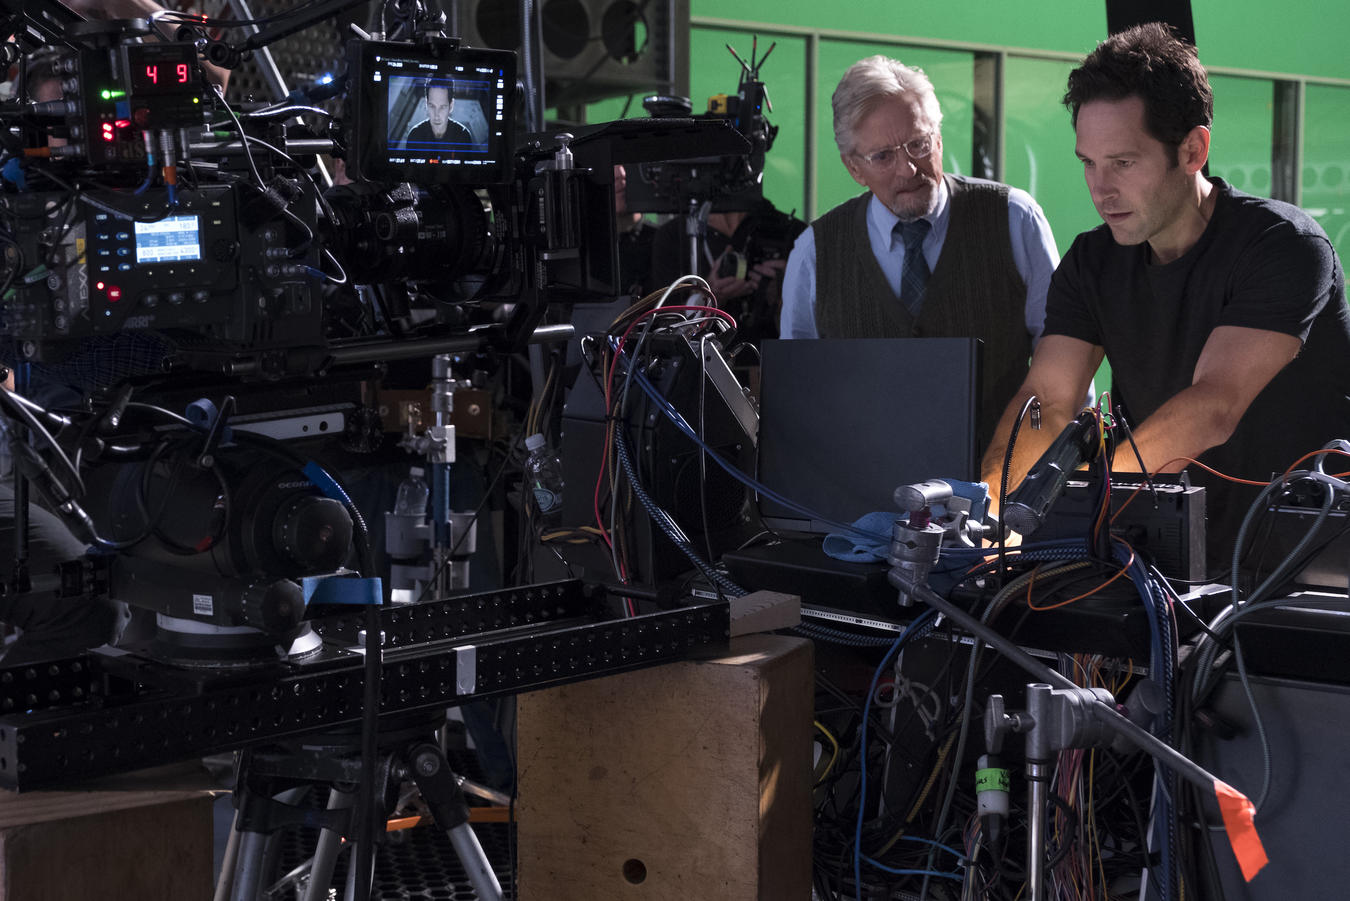 Hank Pym (Michael Douglas) and Ant-Man/Scott Lang (Paul Rudd) BTS on set.